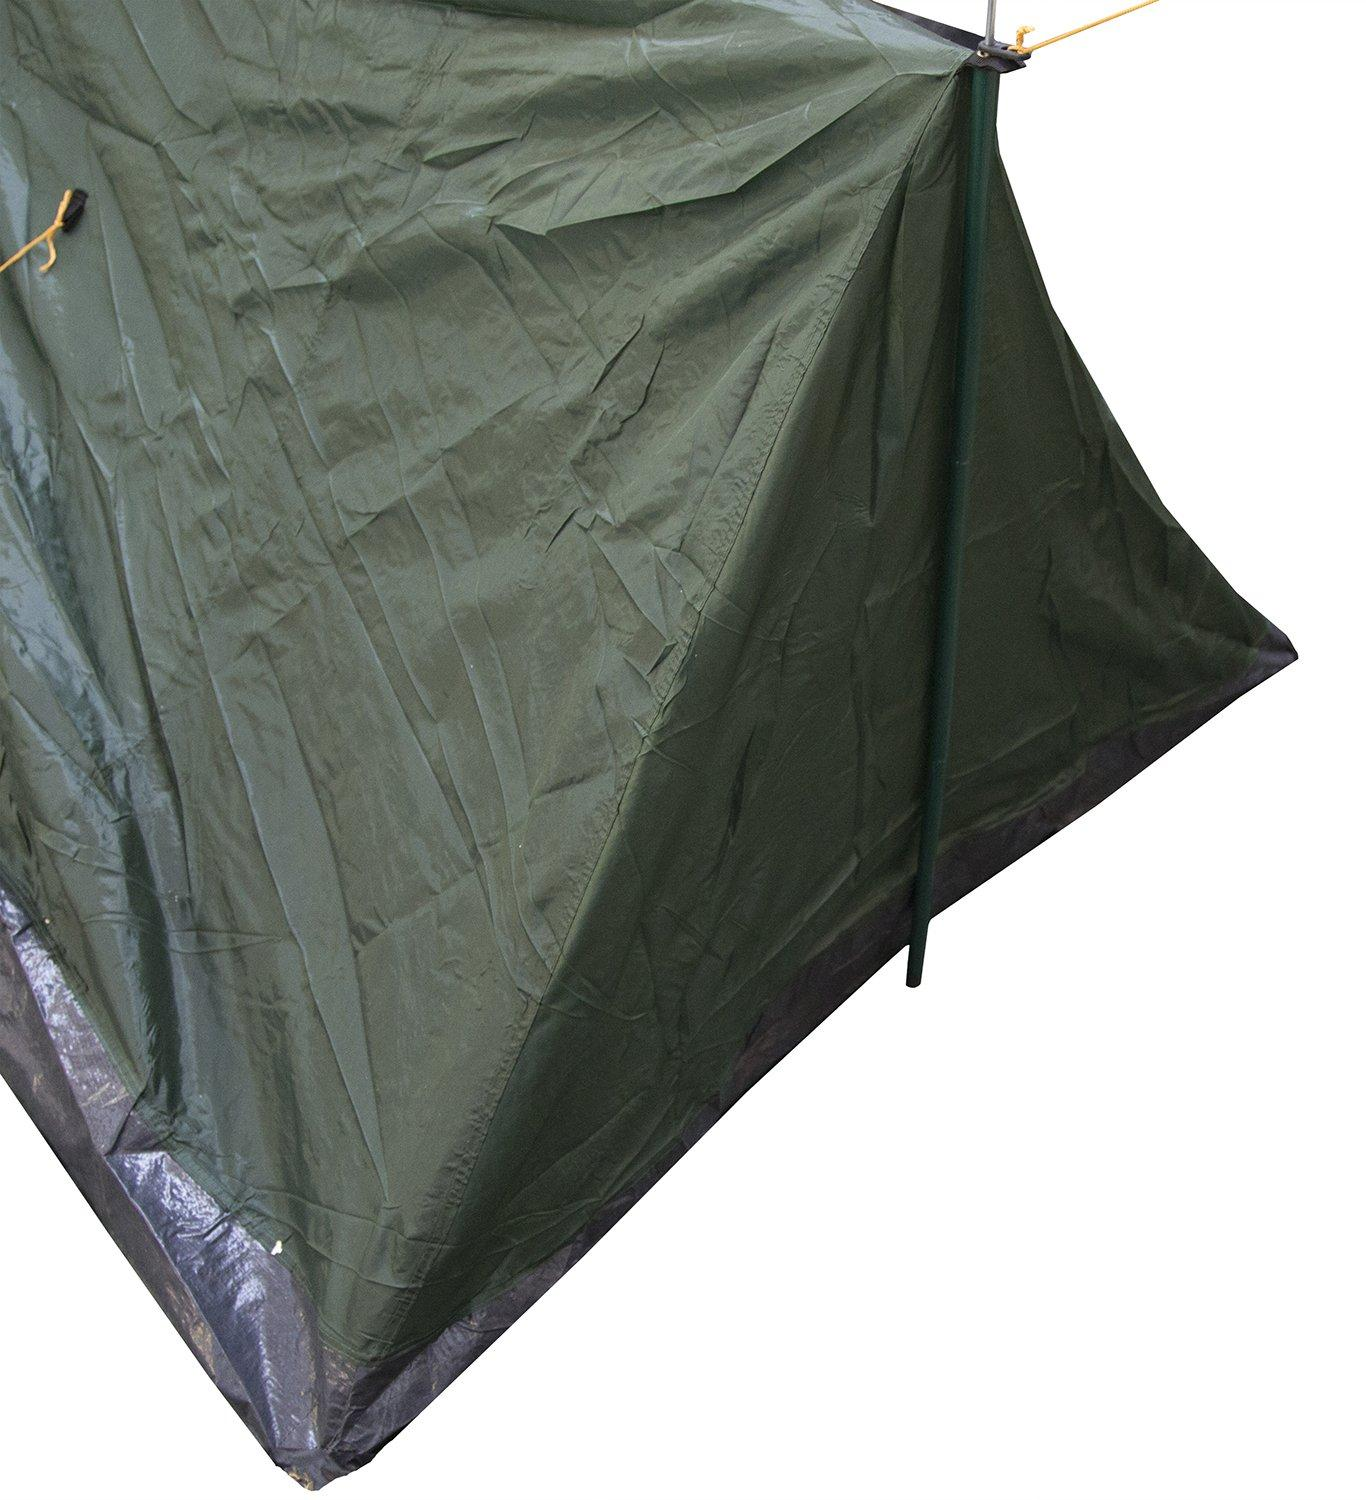 c&ing backpacking tent 2-person  sc 1 st  Amazon.com & Amazon.com : Stansport Scout A-Frame Backpackers Tent Green : Pup ...